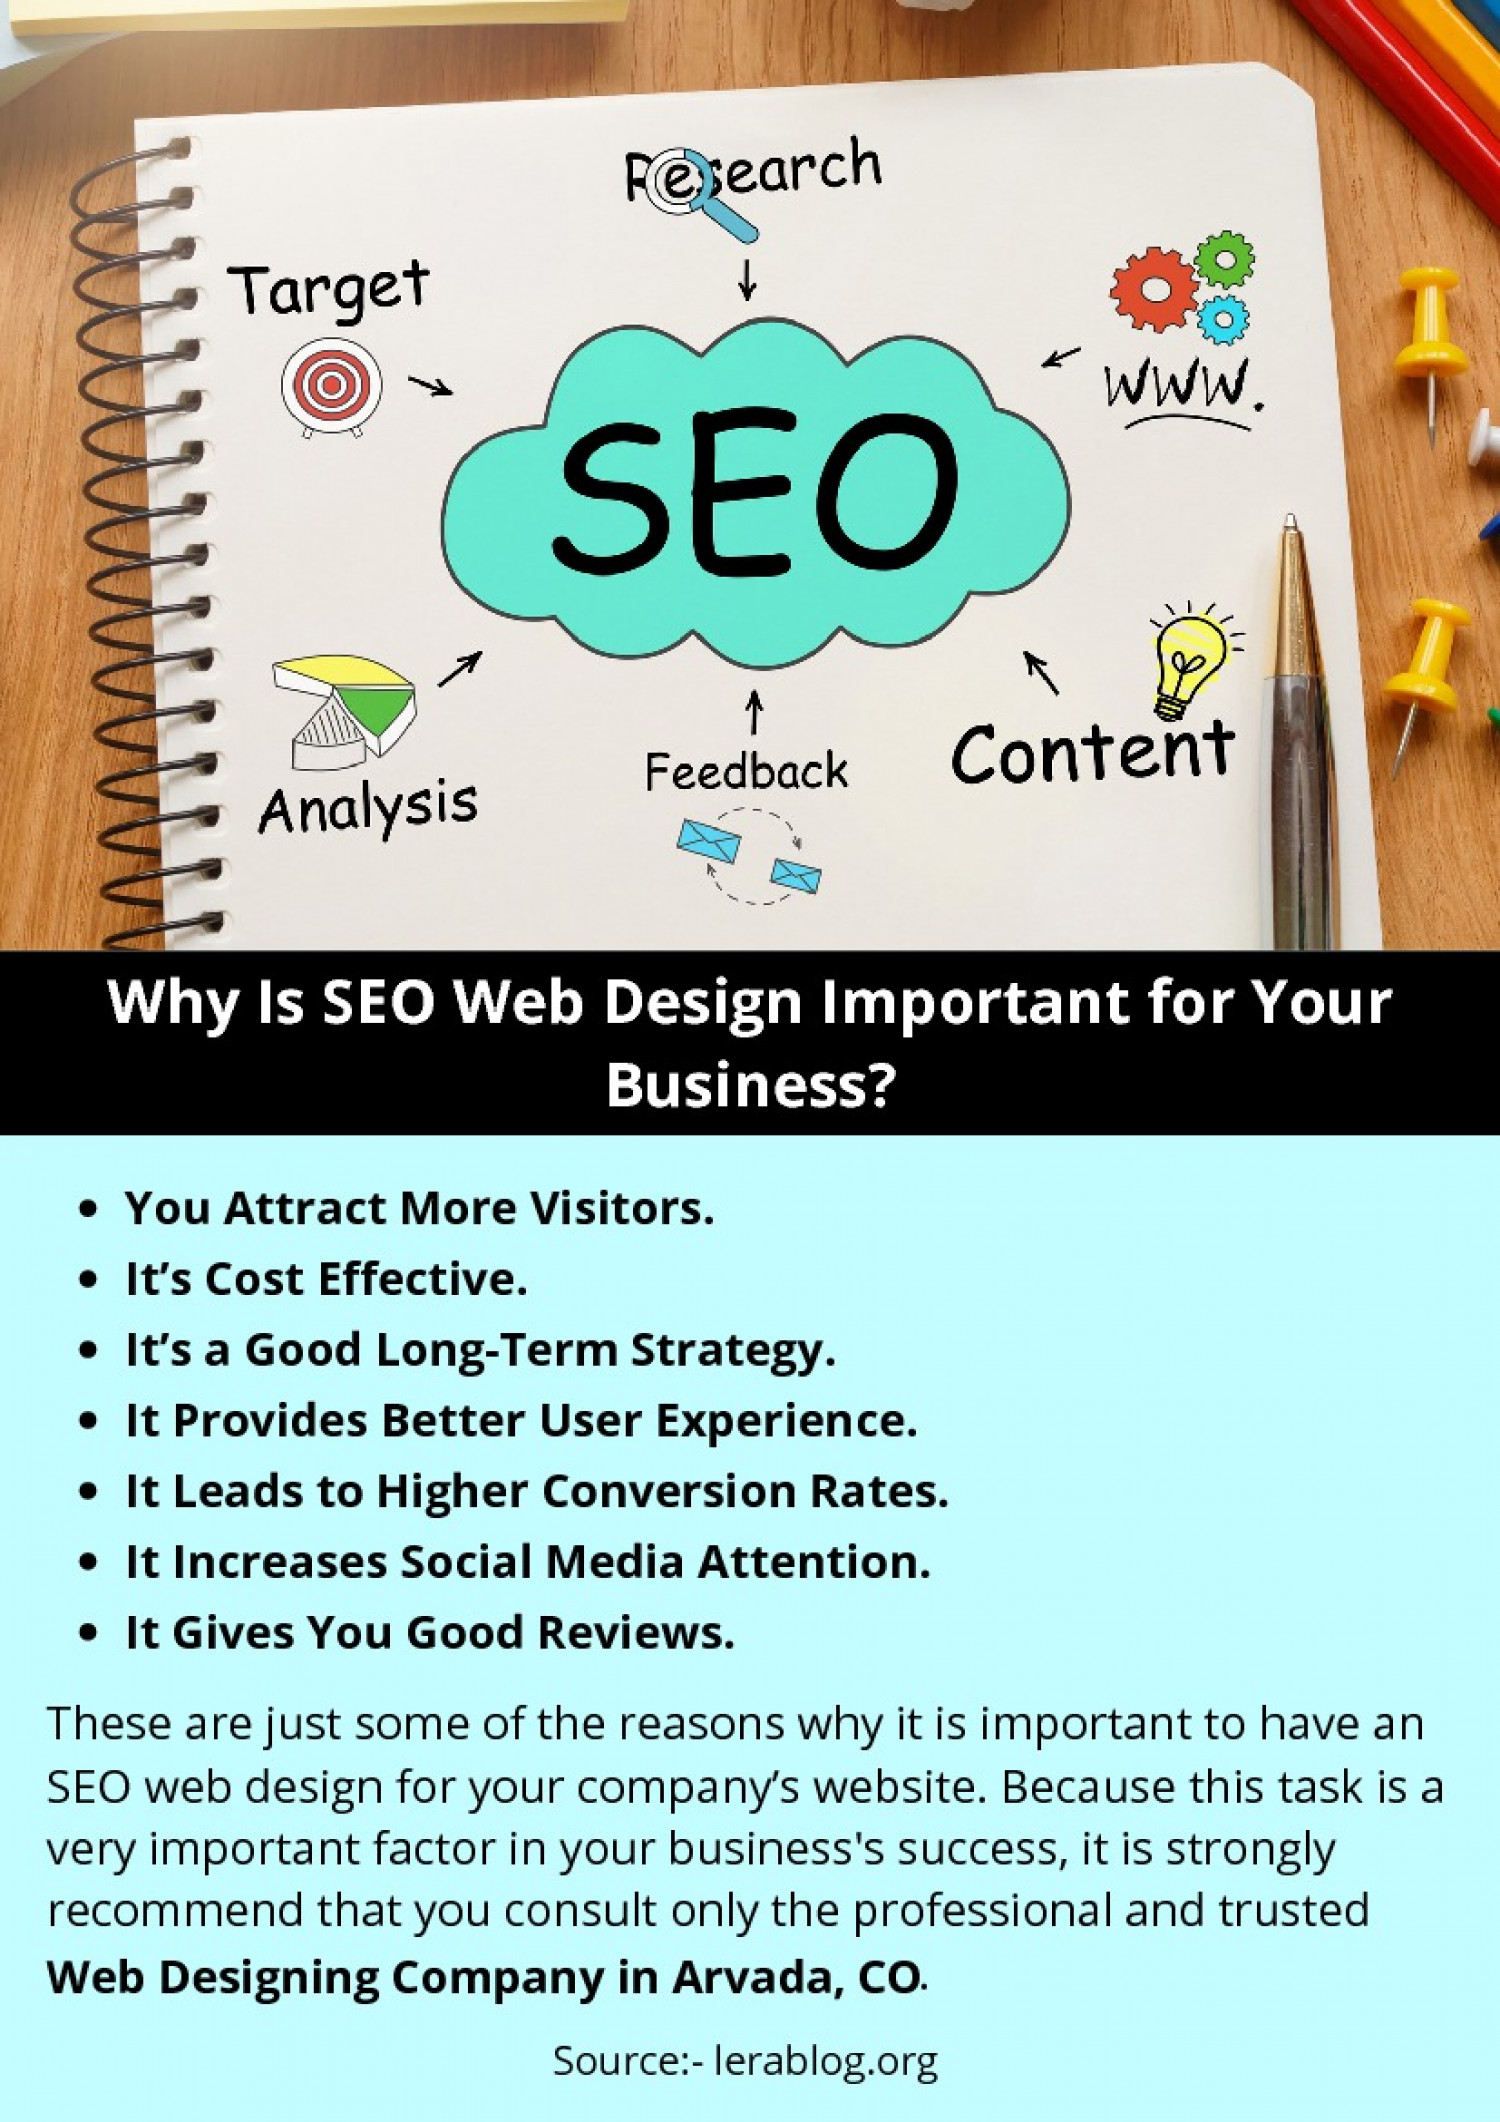 Why Is SEO Web Design Important for Your Business? Infographic